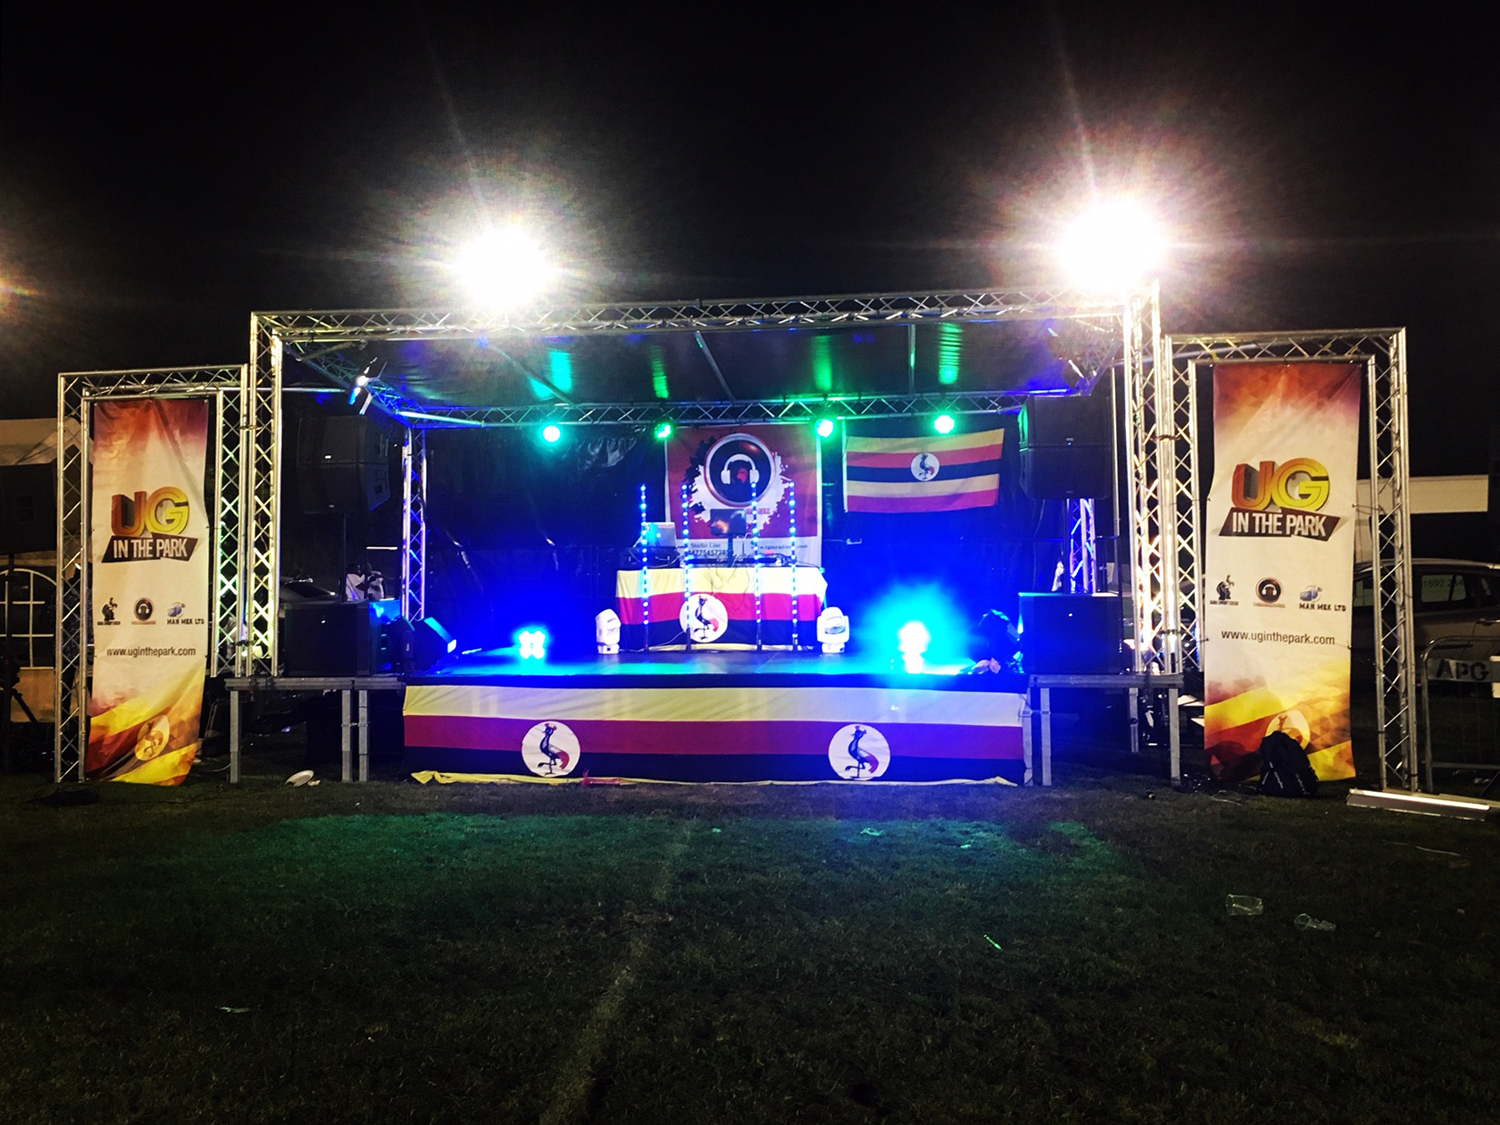 UG in the Park Festival Stage 2019